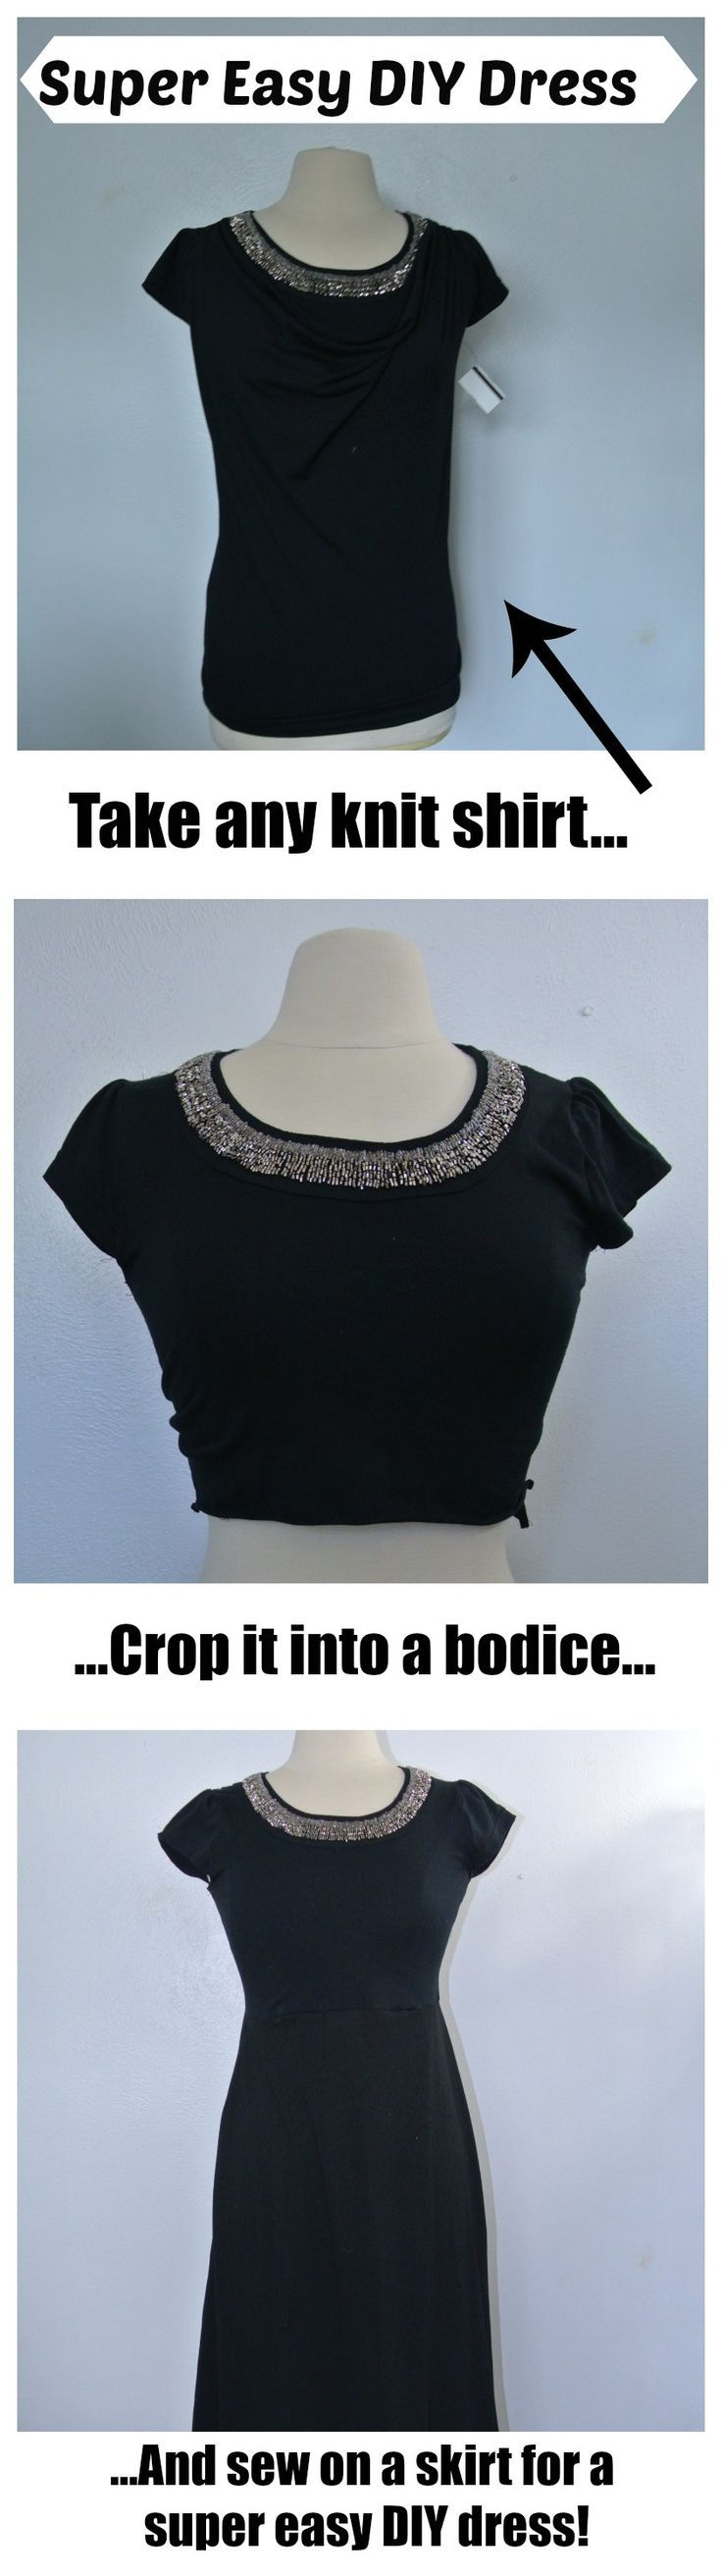 This is so easy I can't believe I didn't think of it sooner. Use a shirt to create a dress bodice Take any knit shirt, crop it into a bodice, add a skirt, and BAM! New dress with half the work. Plus you can use tops that already have beadwork so you don't have to do any!